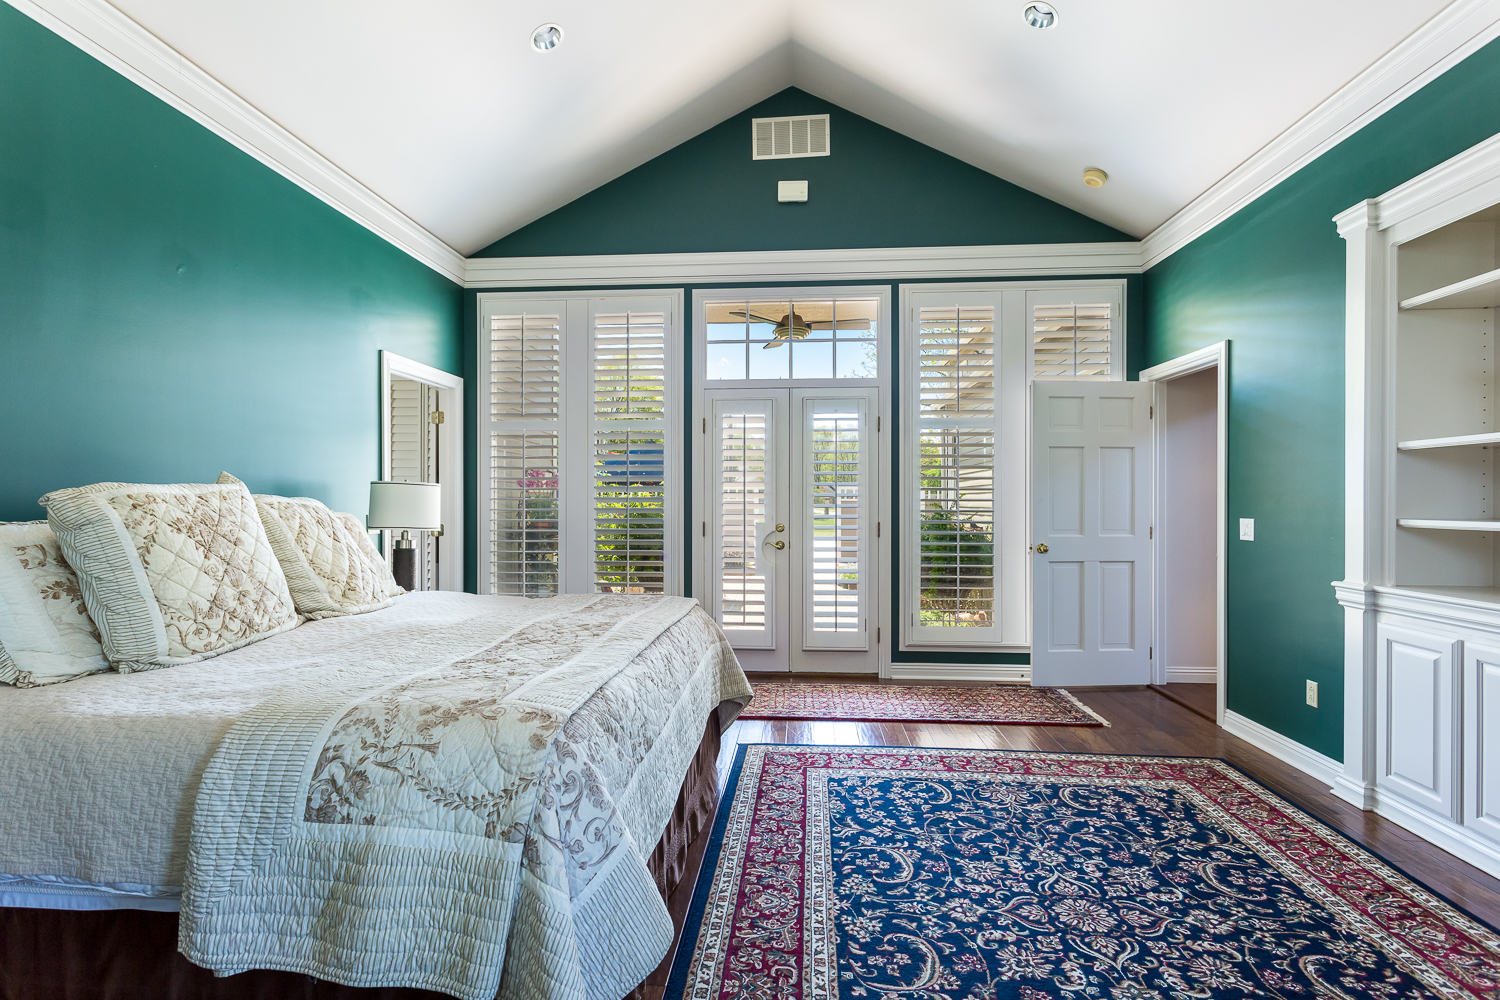 Bedroom shot for real estate photo shoot of home in Siloam Sprin